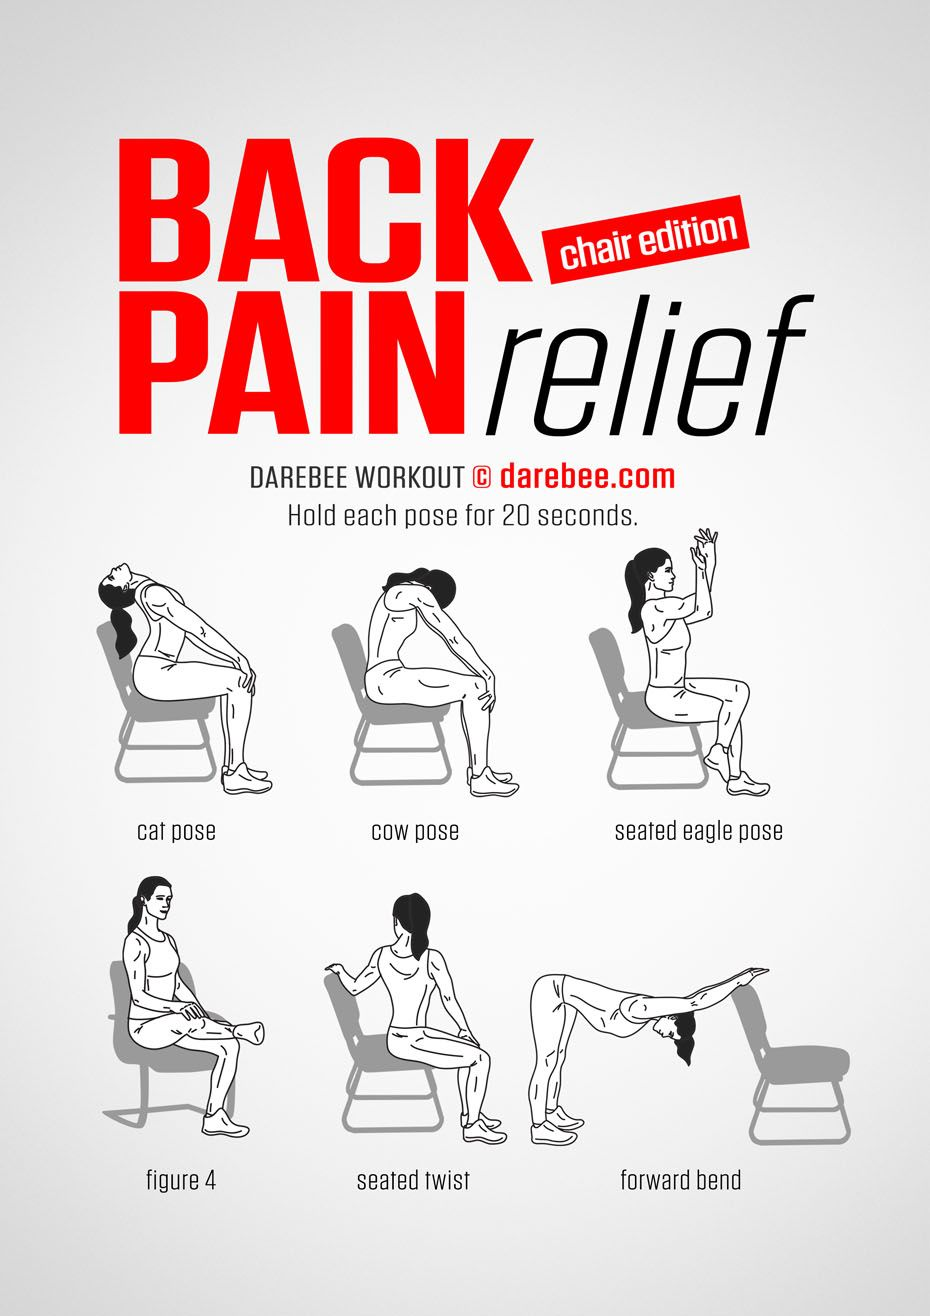 Pin on exercises for back pain